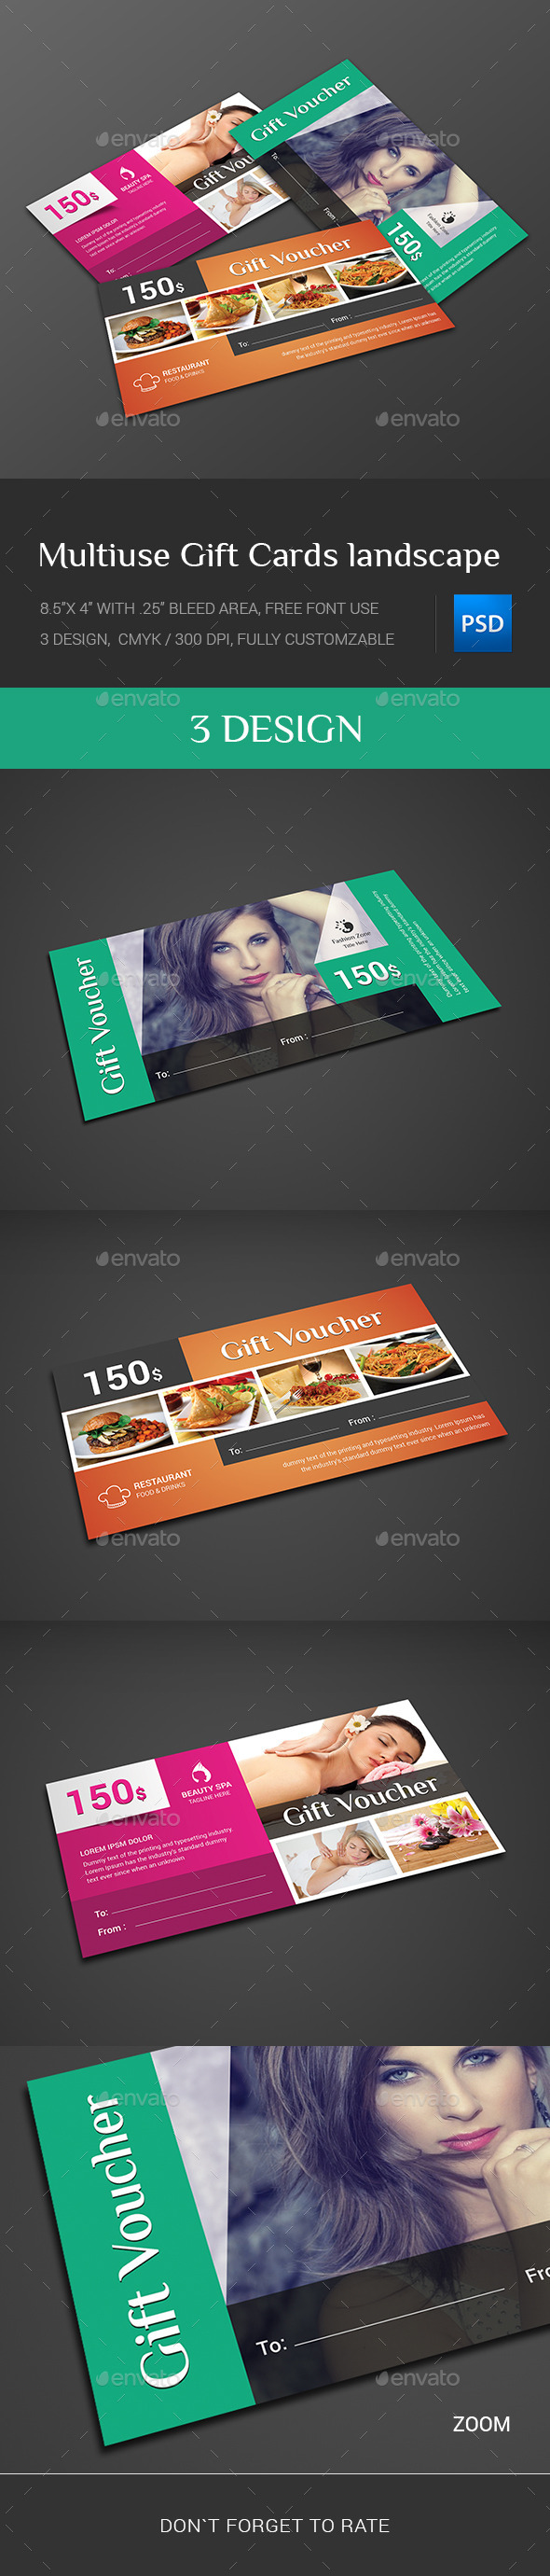 GraphicRiver Multiuse Gift Cards landscape 11649958